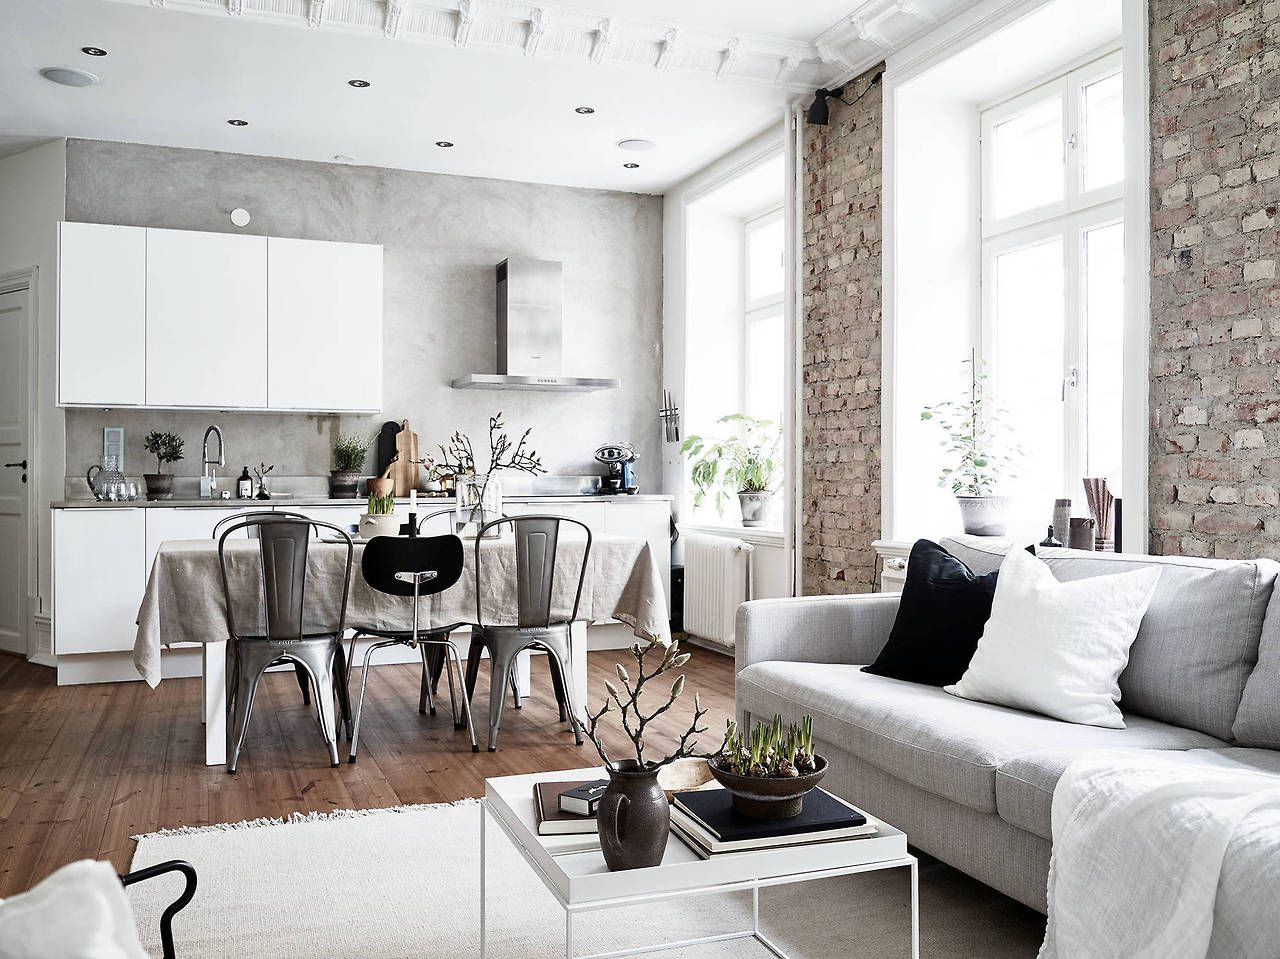 1 Tumblr Scandinavian Furniture Design Interior Design Living Room Scandinavian Dining Room